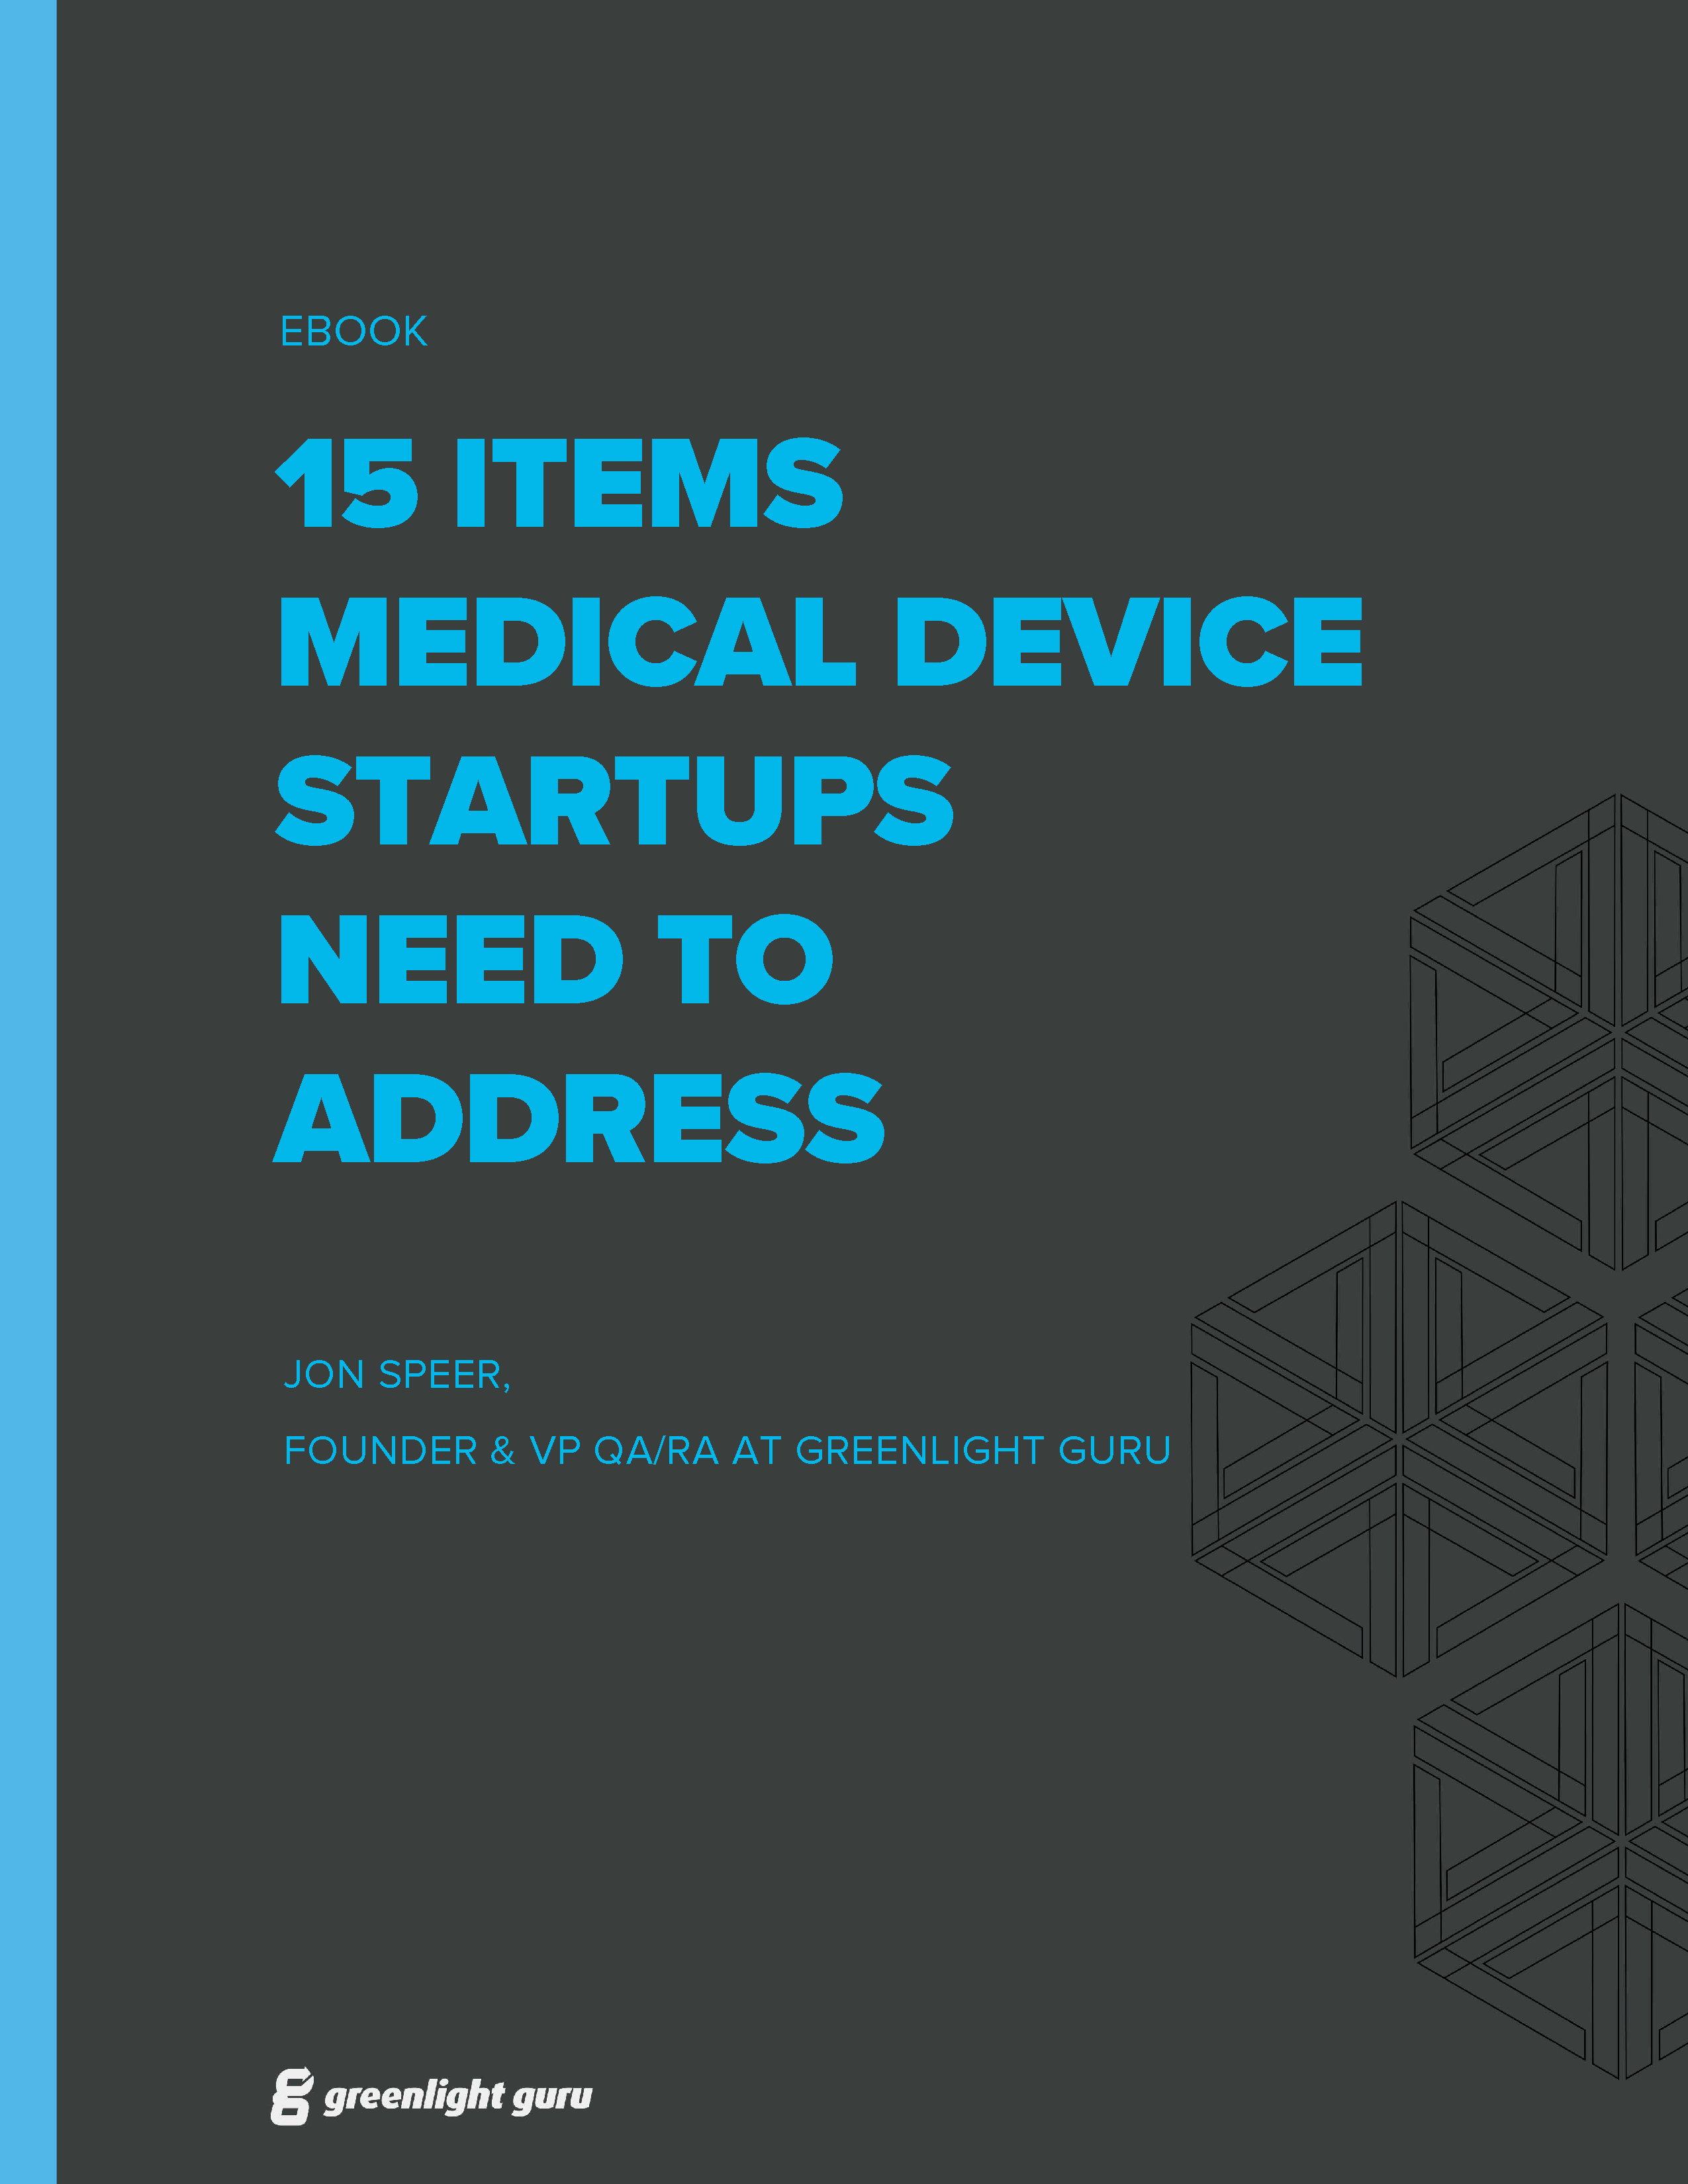 15 Items for Medical Device Startups to Address